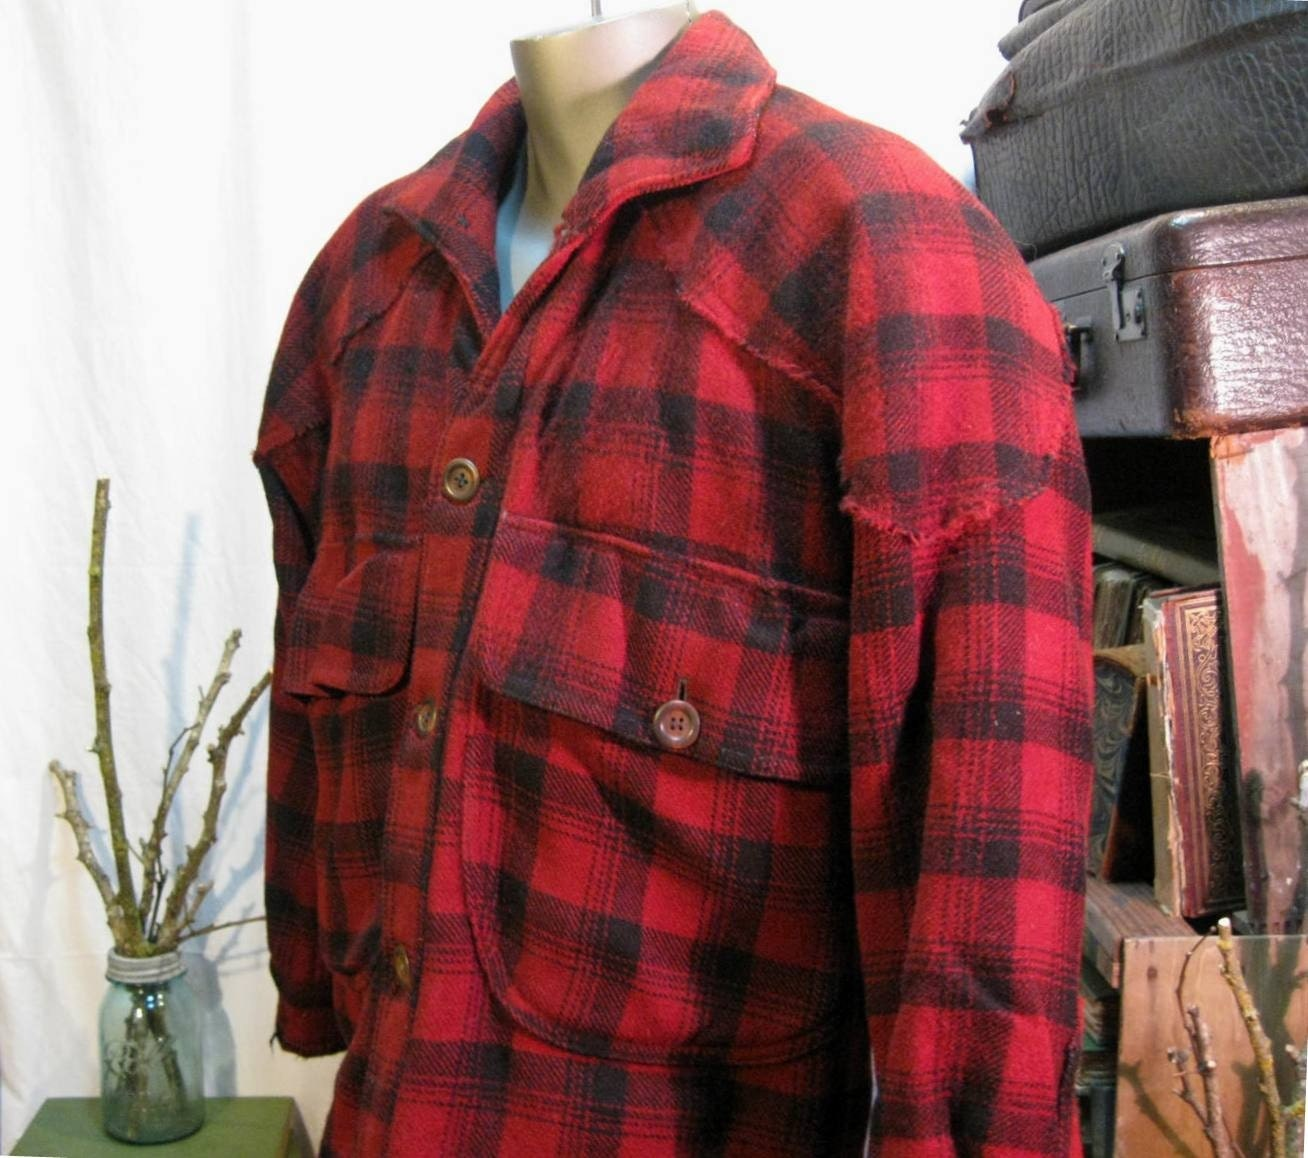 Size: X-LargeColor: Red Black Plaid Verified Purchase Great jacket, amazing price, wanted one forever, when I saw it on sale I jumped on it. It is the real deal if anyone is concerned/5(49).